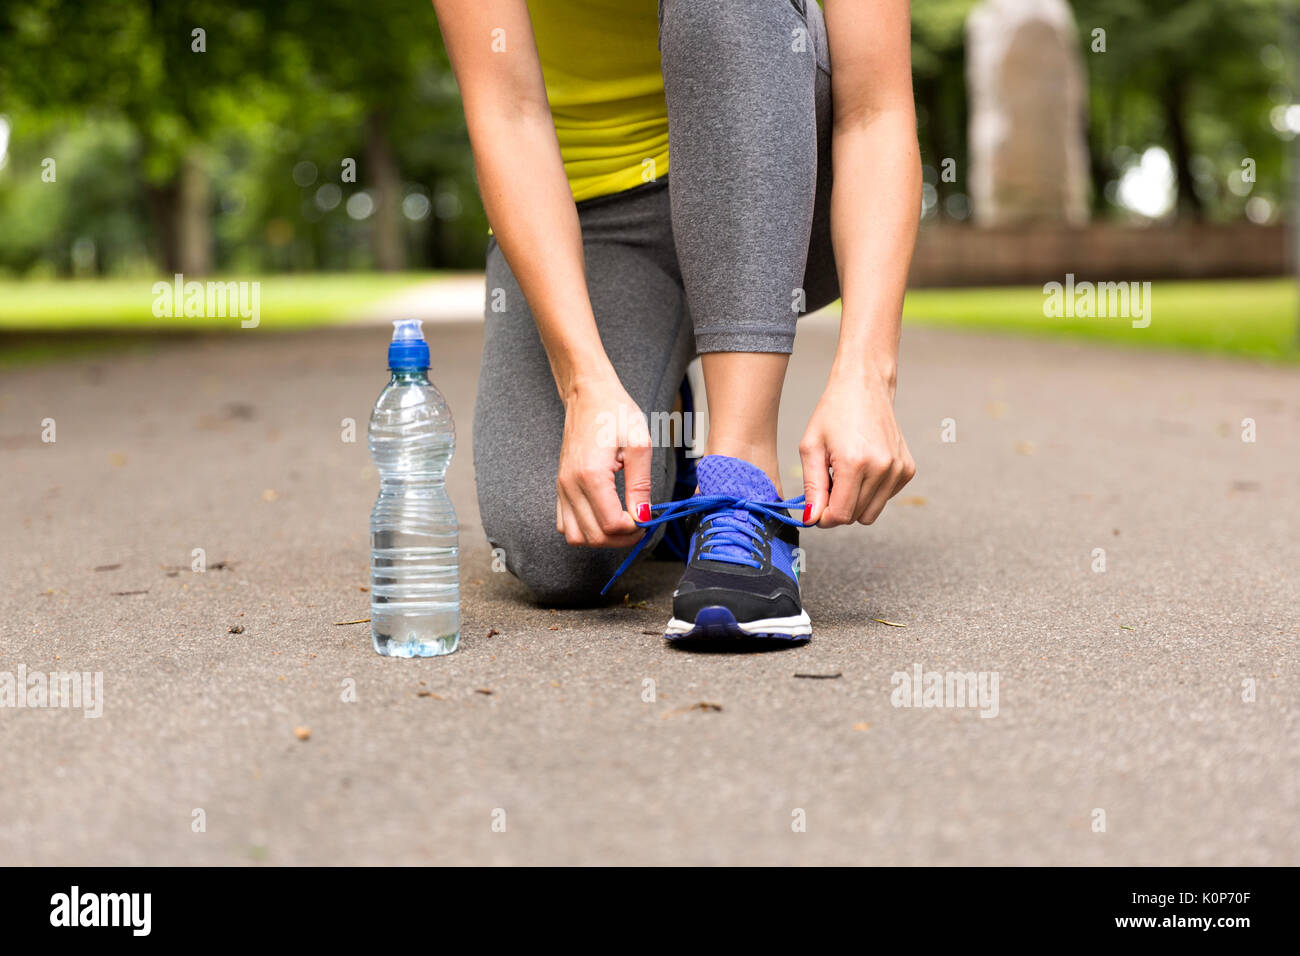 Young woman tying laces of running shoes before training. Healthy lifestyle concept - Stock Image